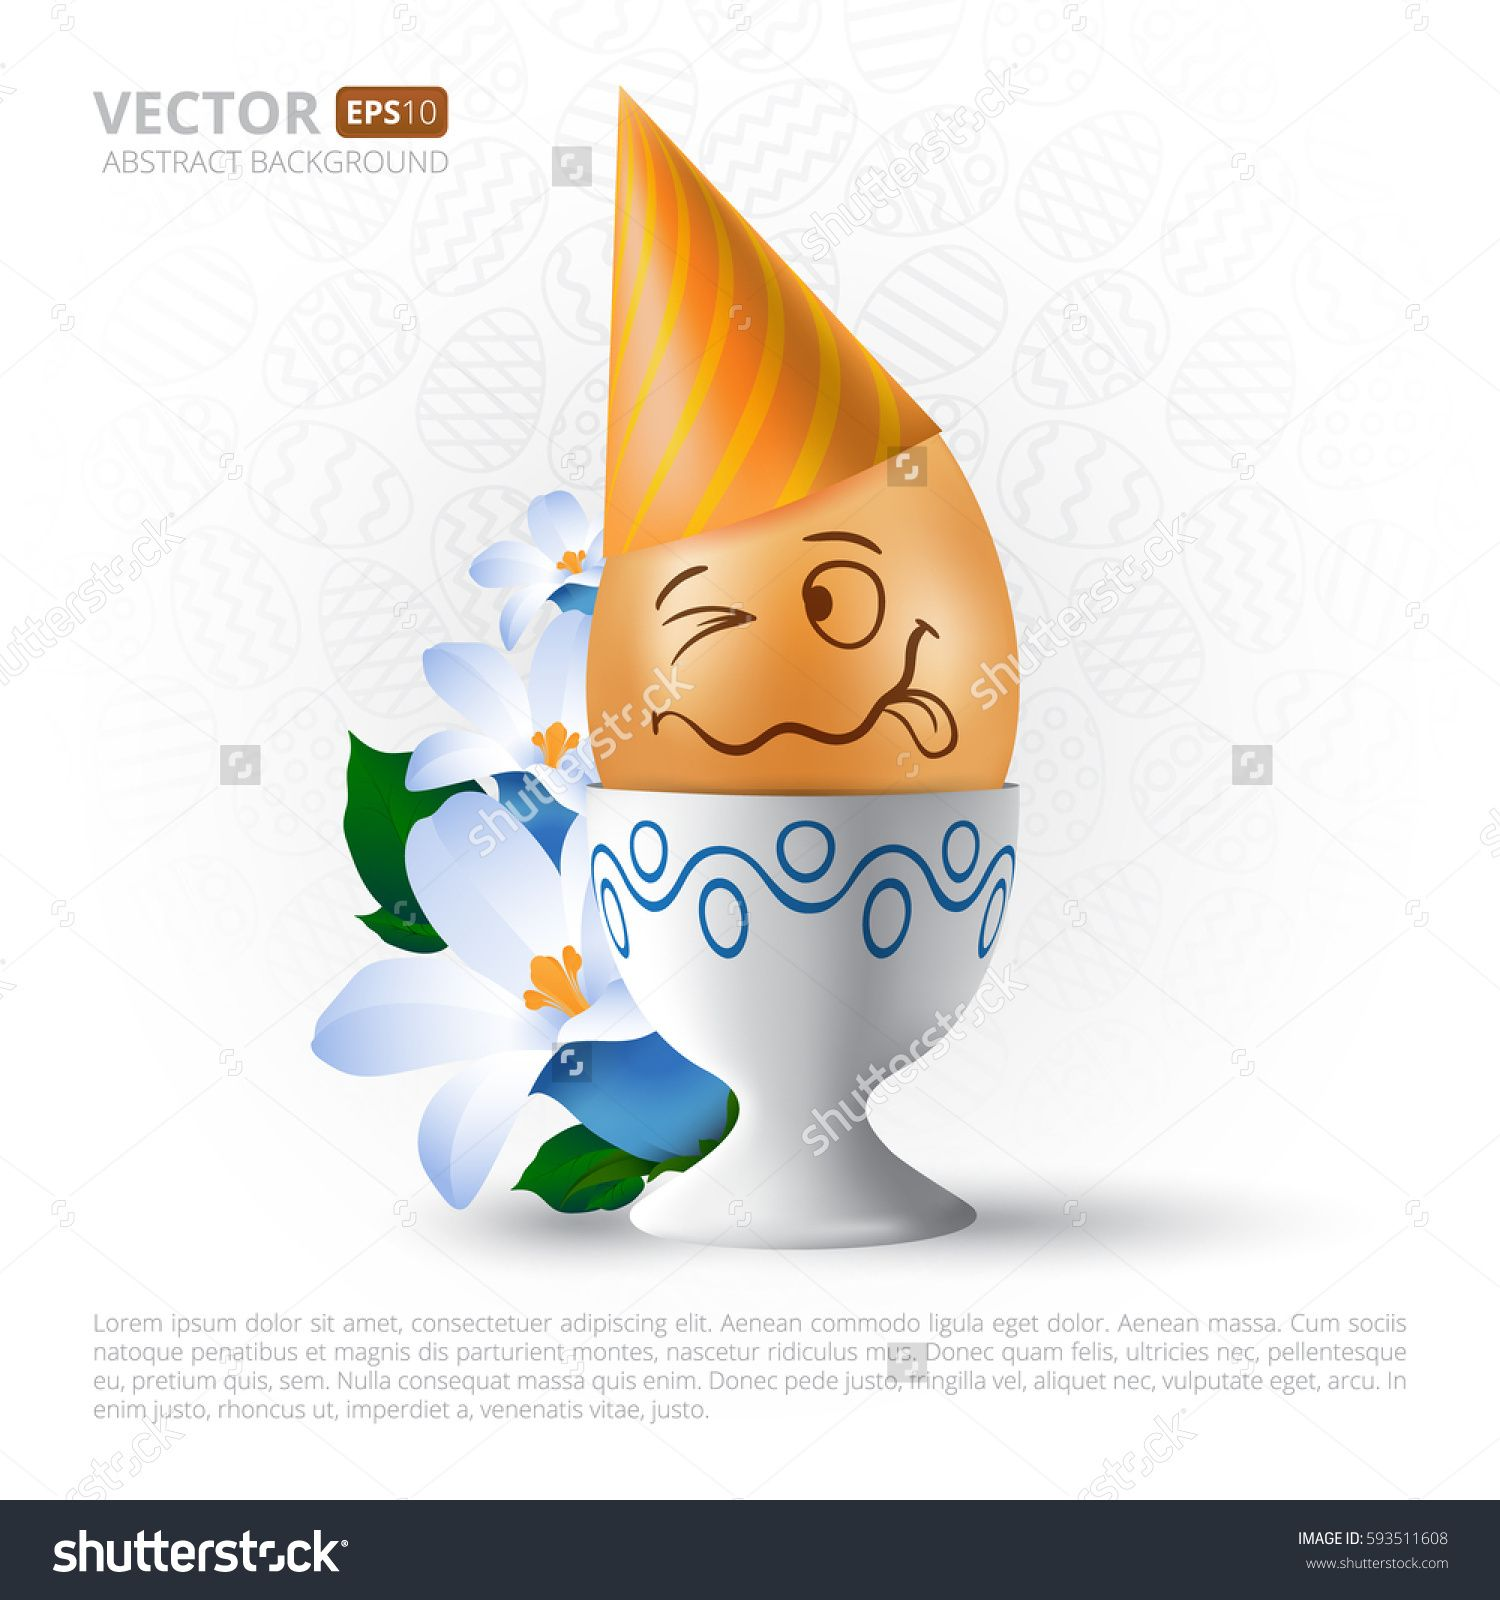 Funny Cartoon Emotional Easter Egg With Painted Face On Stand With